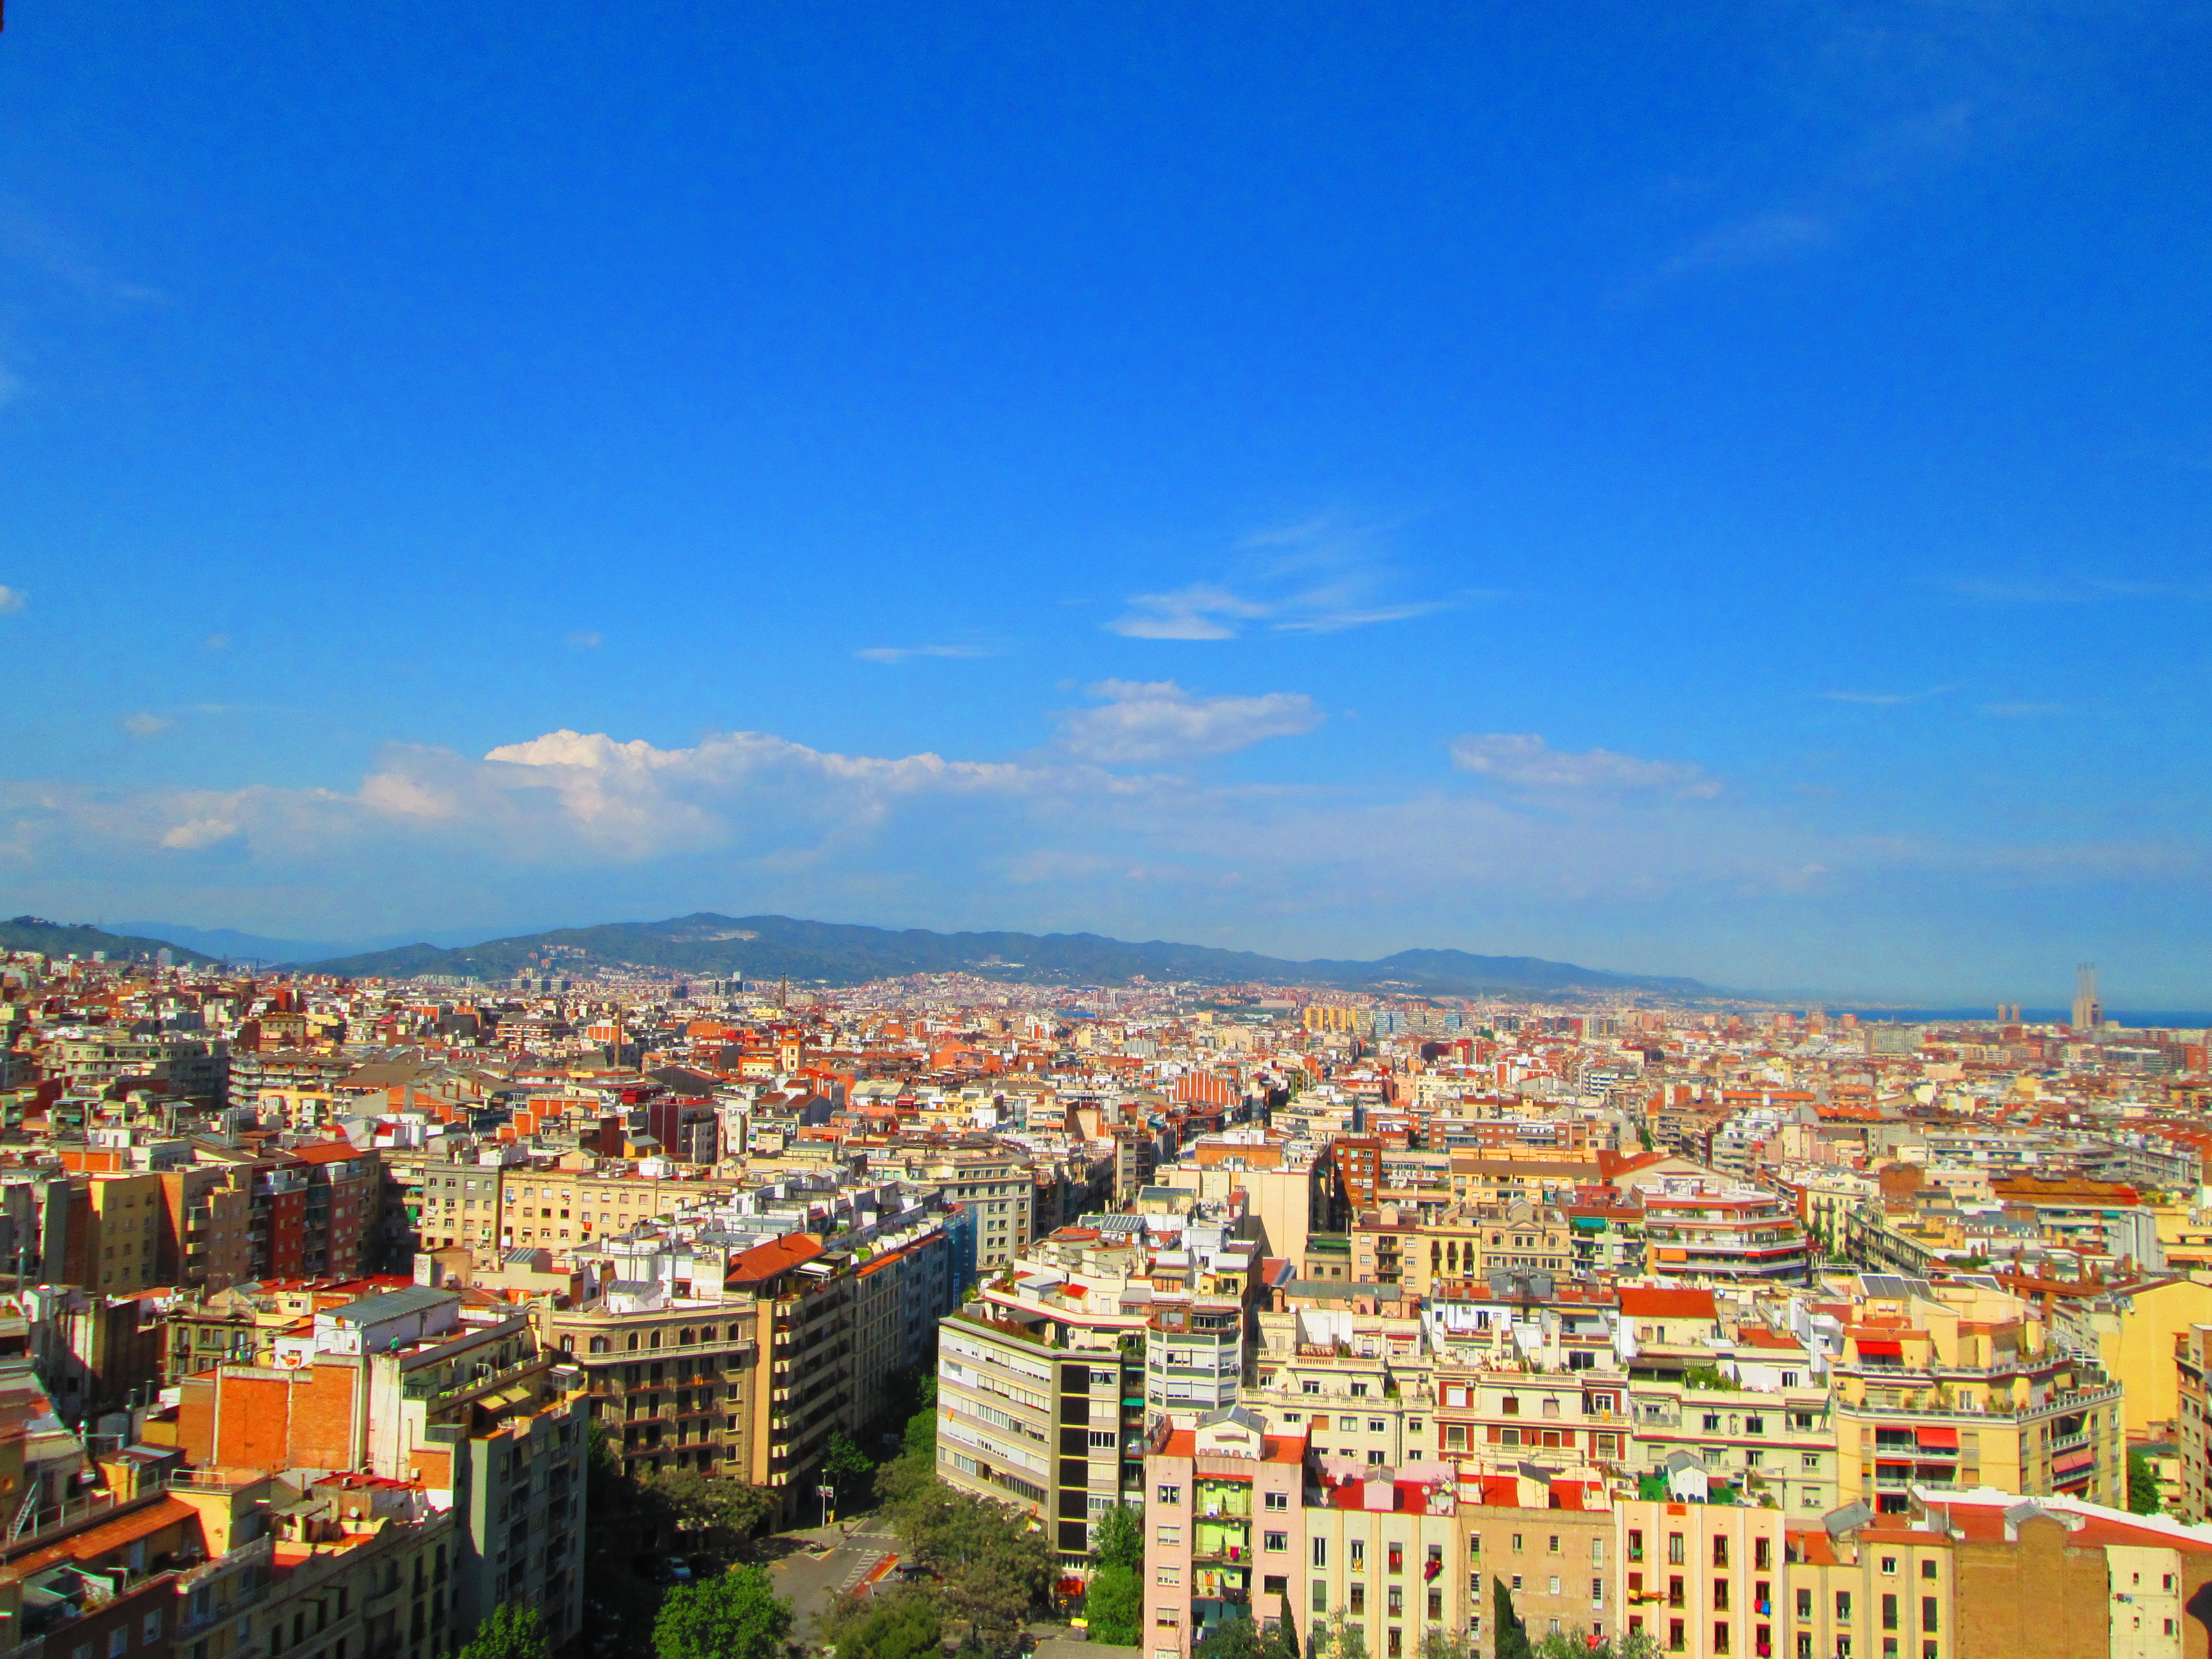 View of Barcelona from the towers of View from the towers of La Sagrada Familia in Barcelona